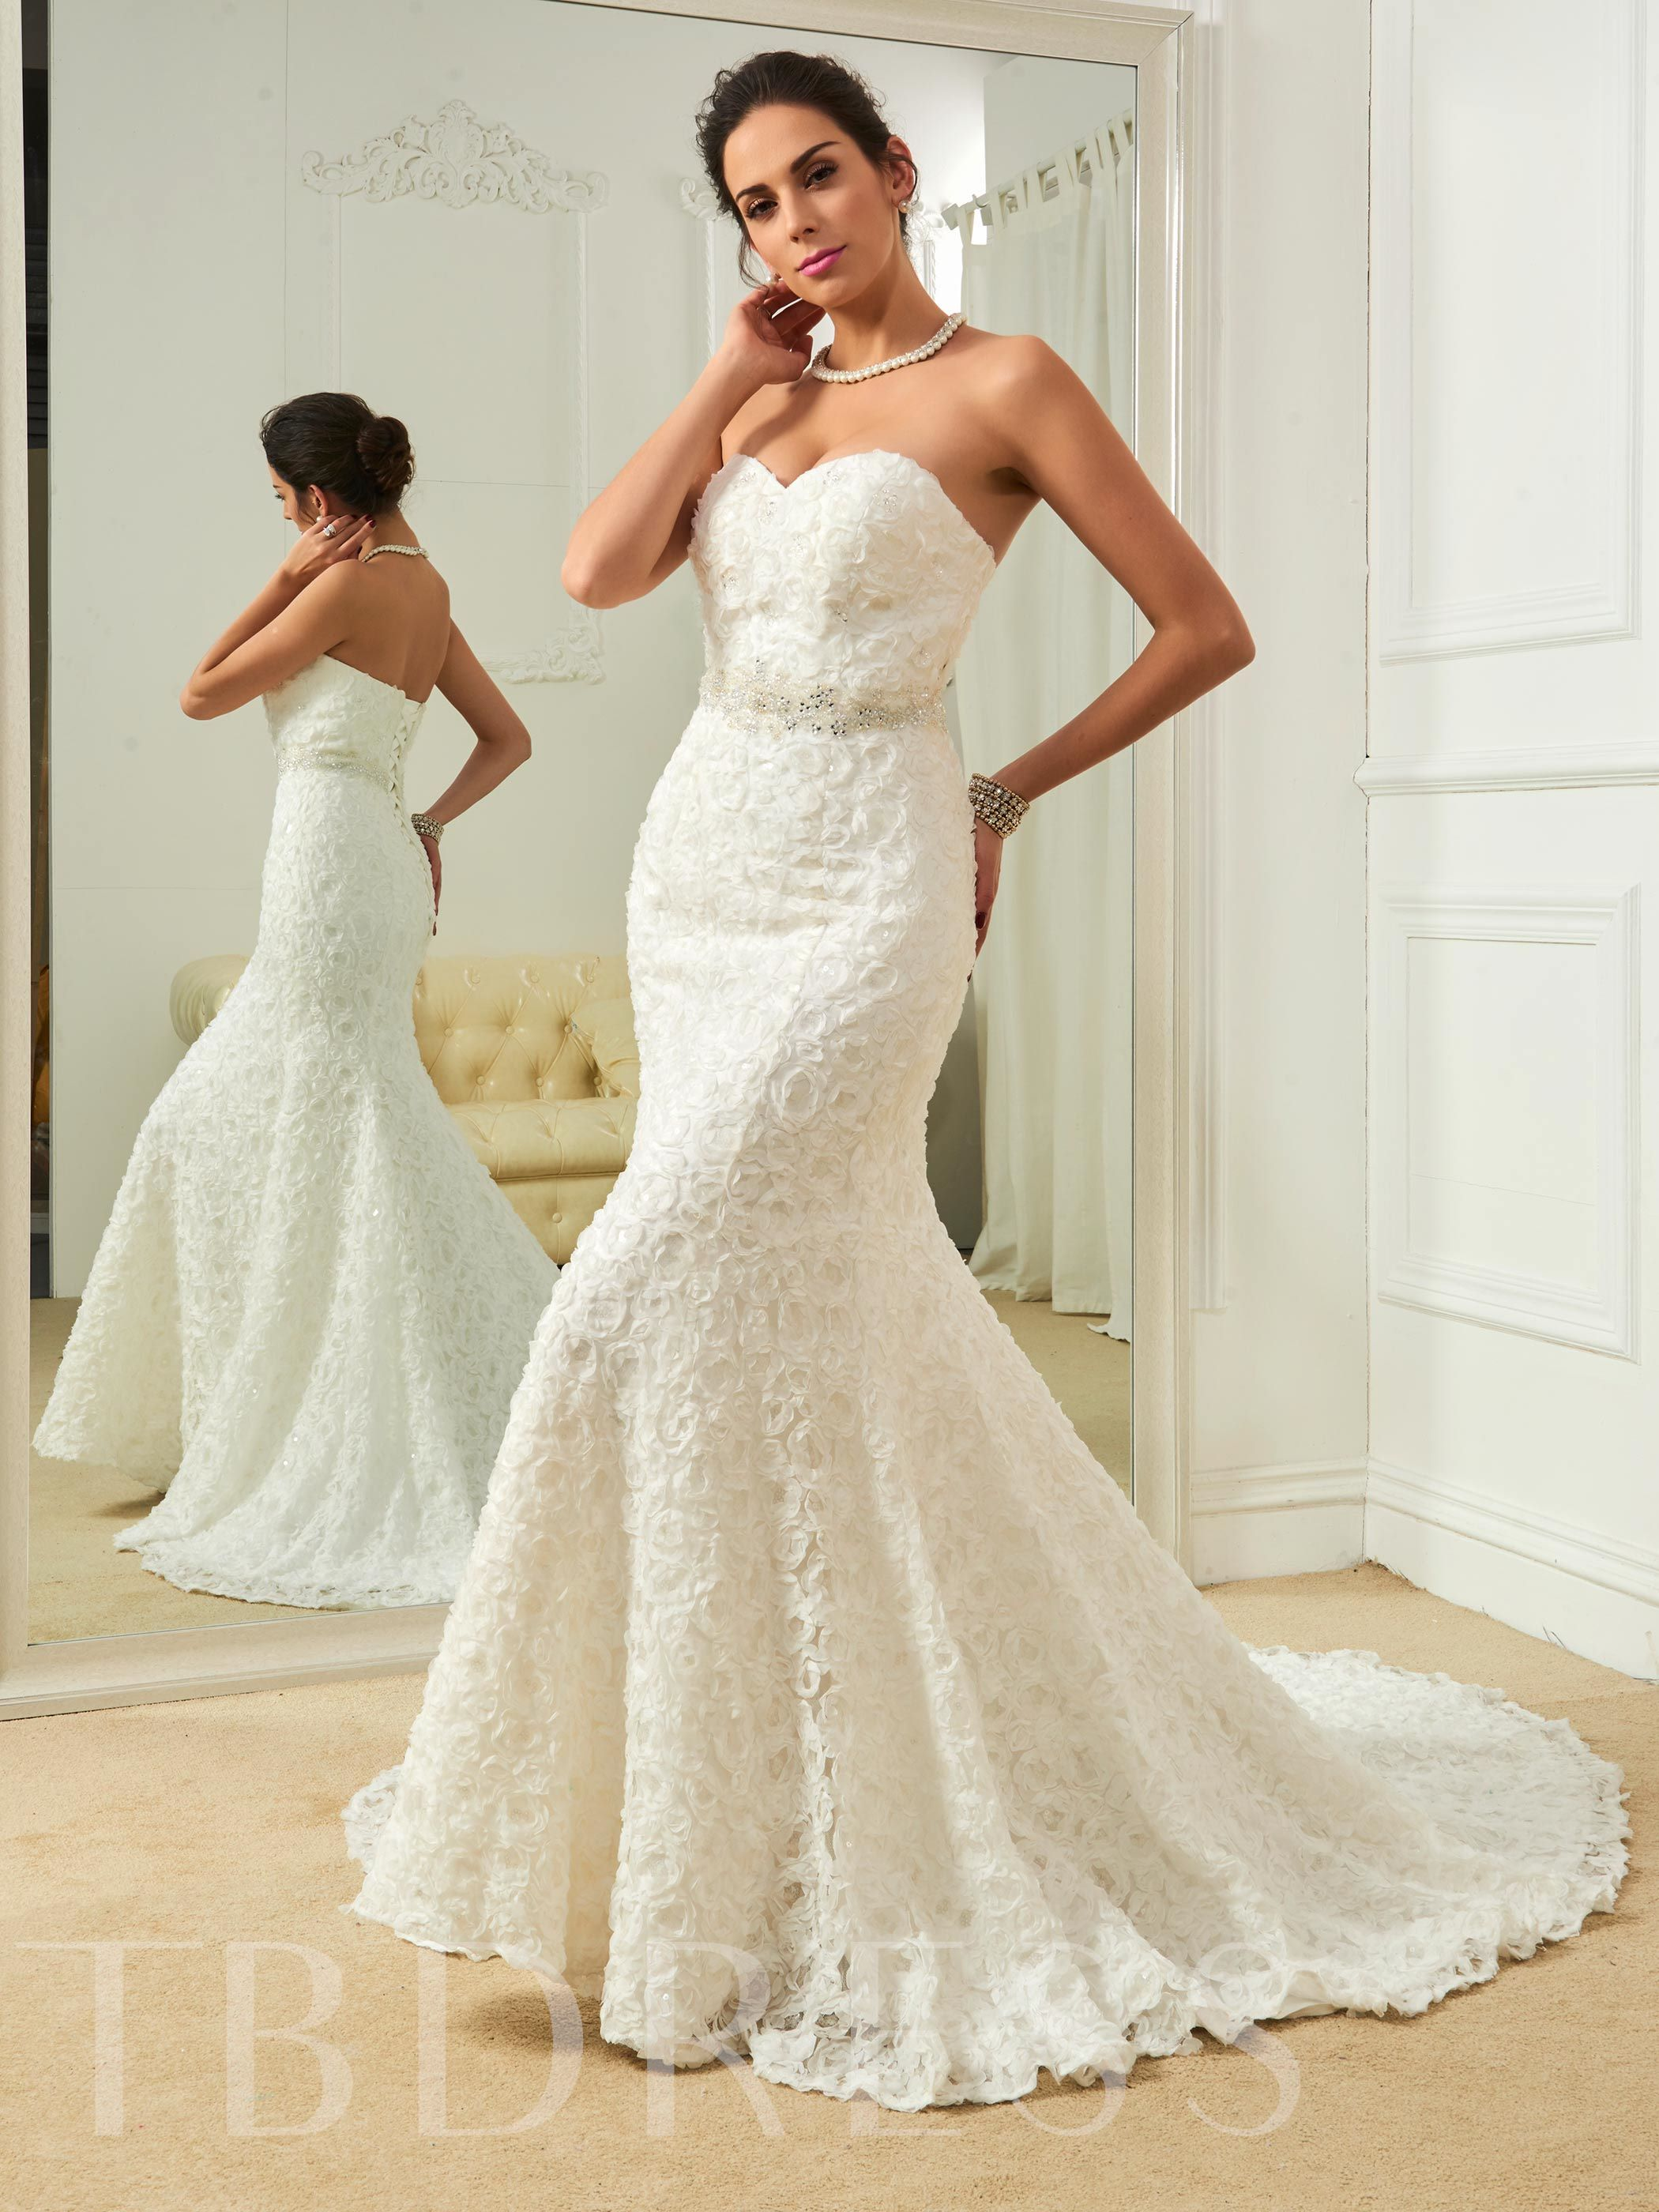 Sweetheart Beading Flowers Mermaid Wedding Dress 12728557